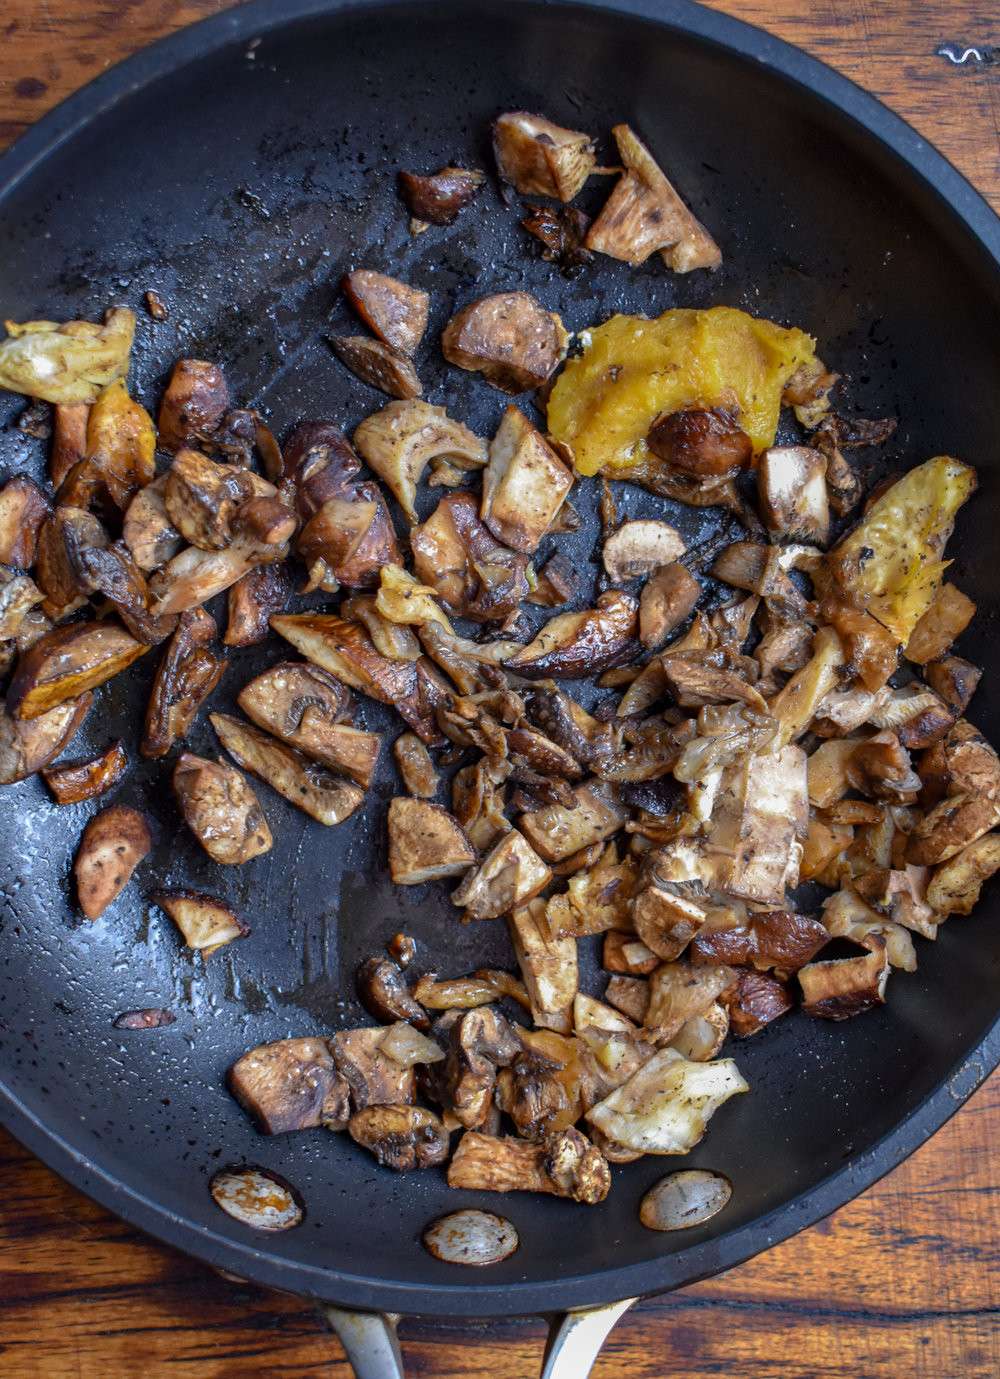 4. While the soup simmers, add all the mushroom ingredients to a medium or small frying pan with 1 tbl olive oil for 6-8 minutes until the mushrooms soften down.